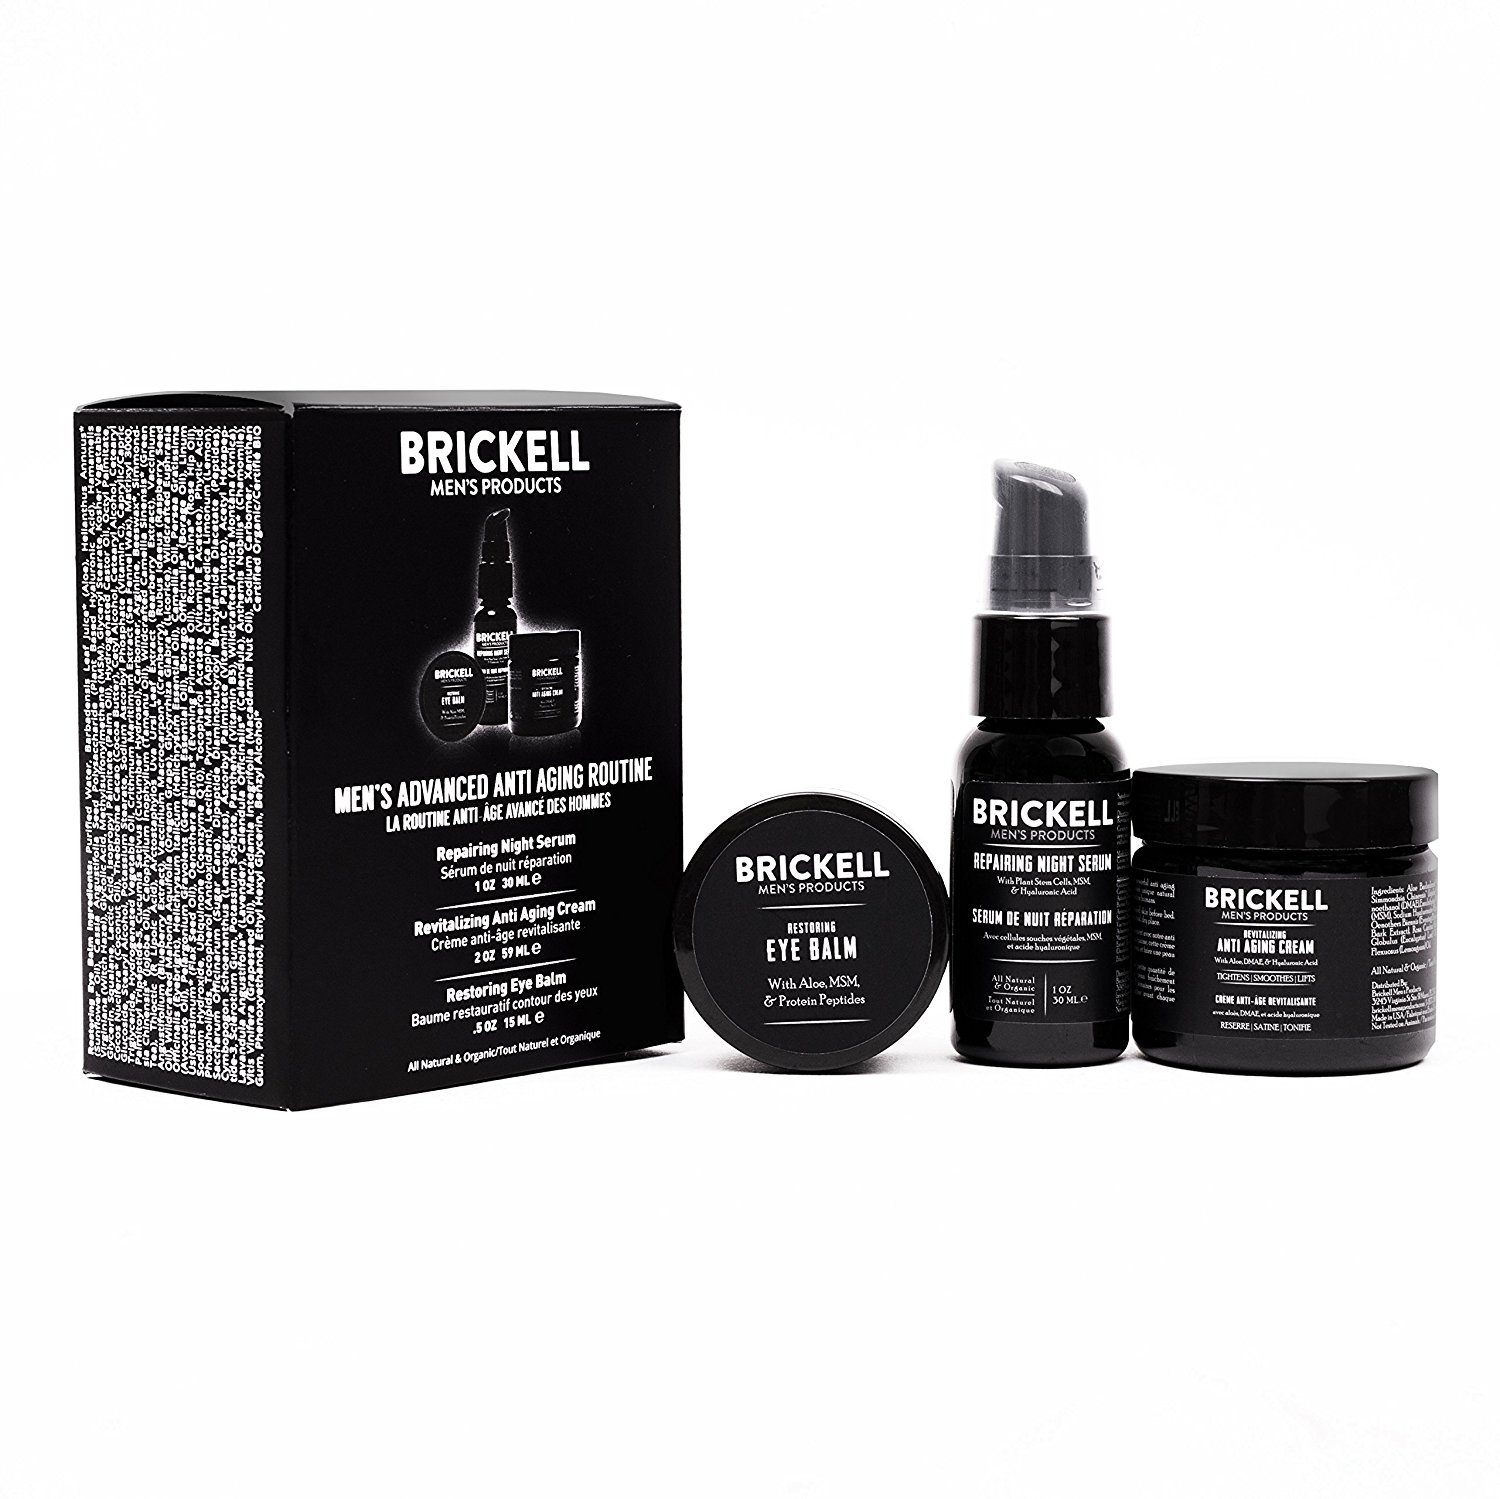 Brickell Men's Advanced Anti-Aging Routine; best men's skincare products